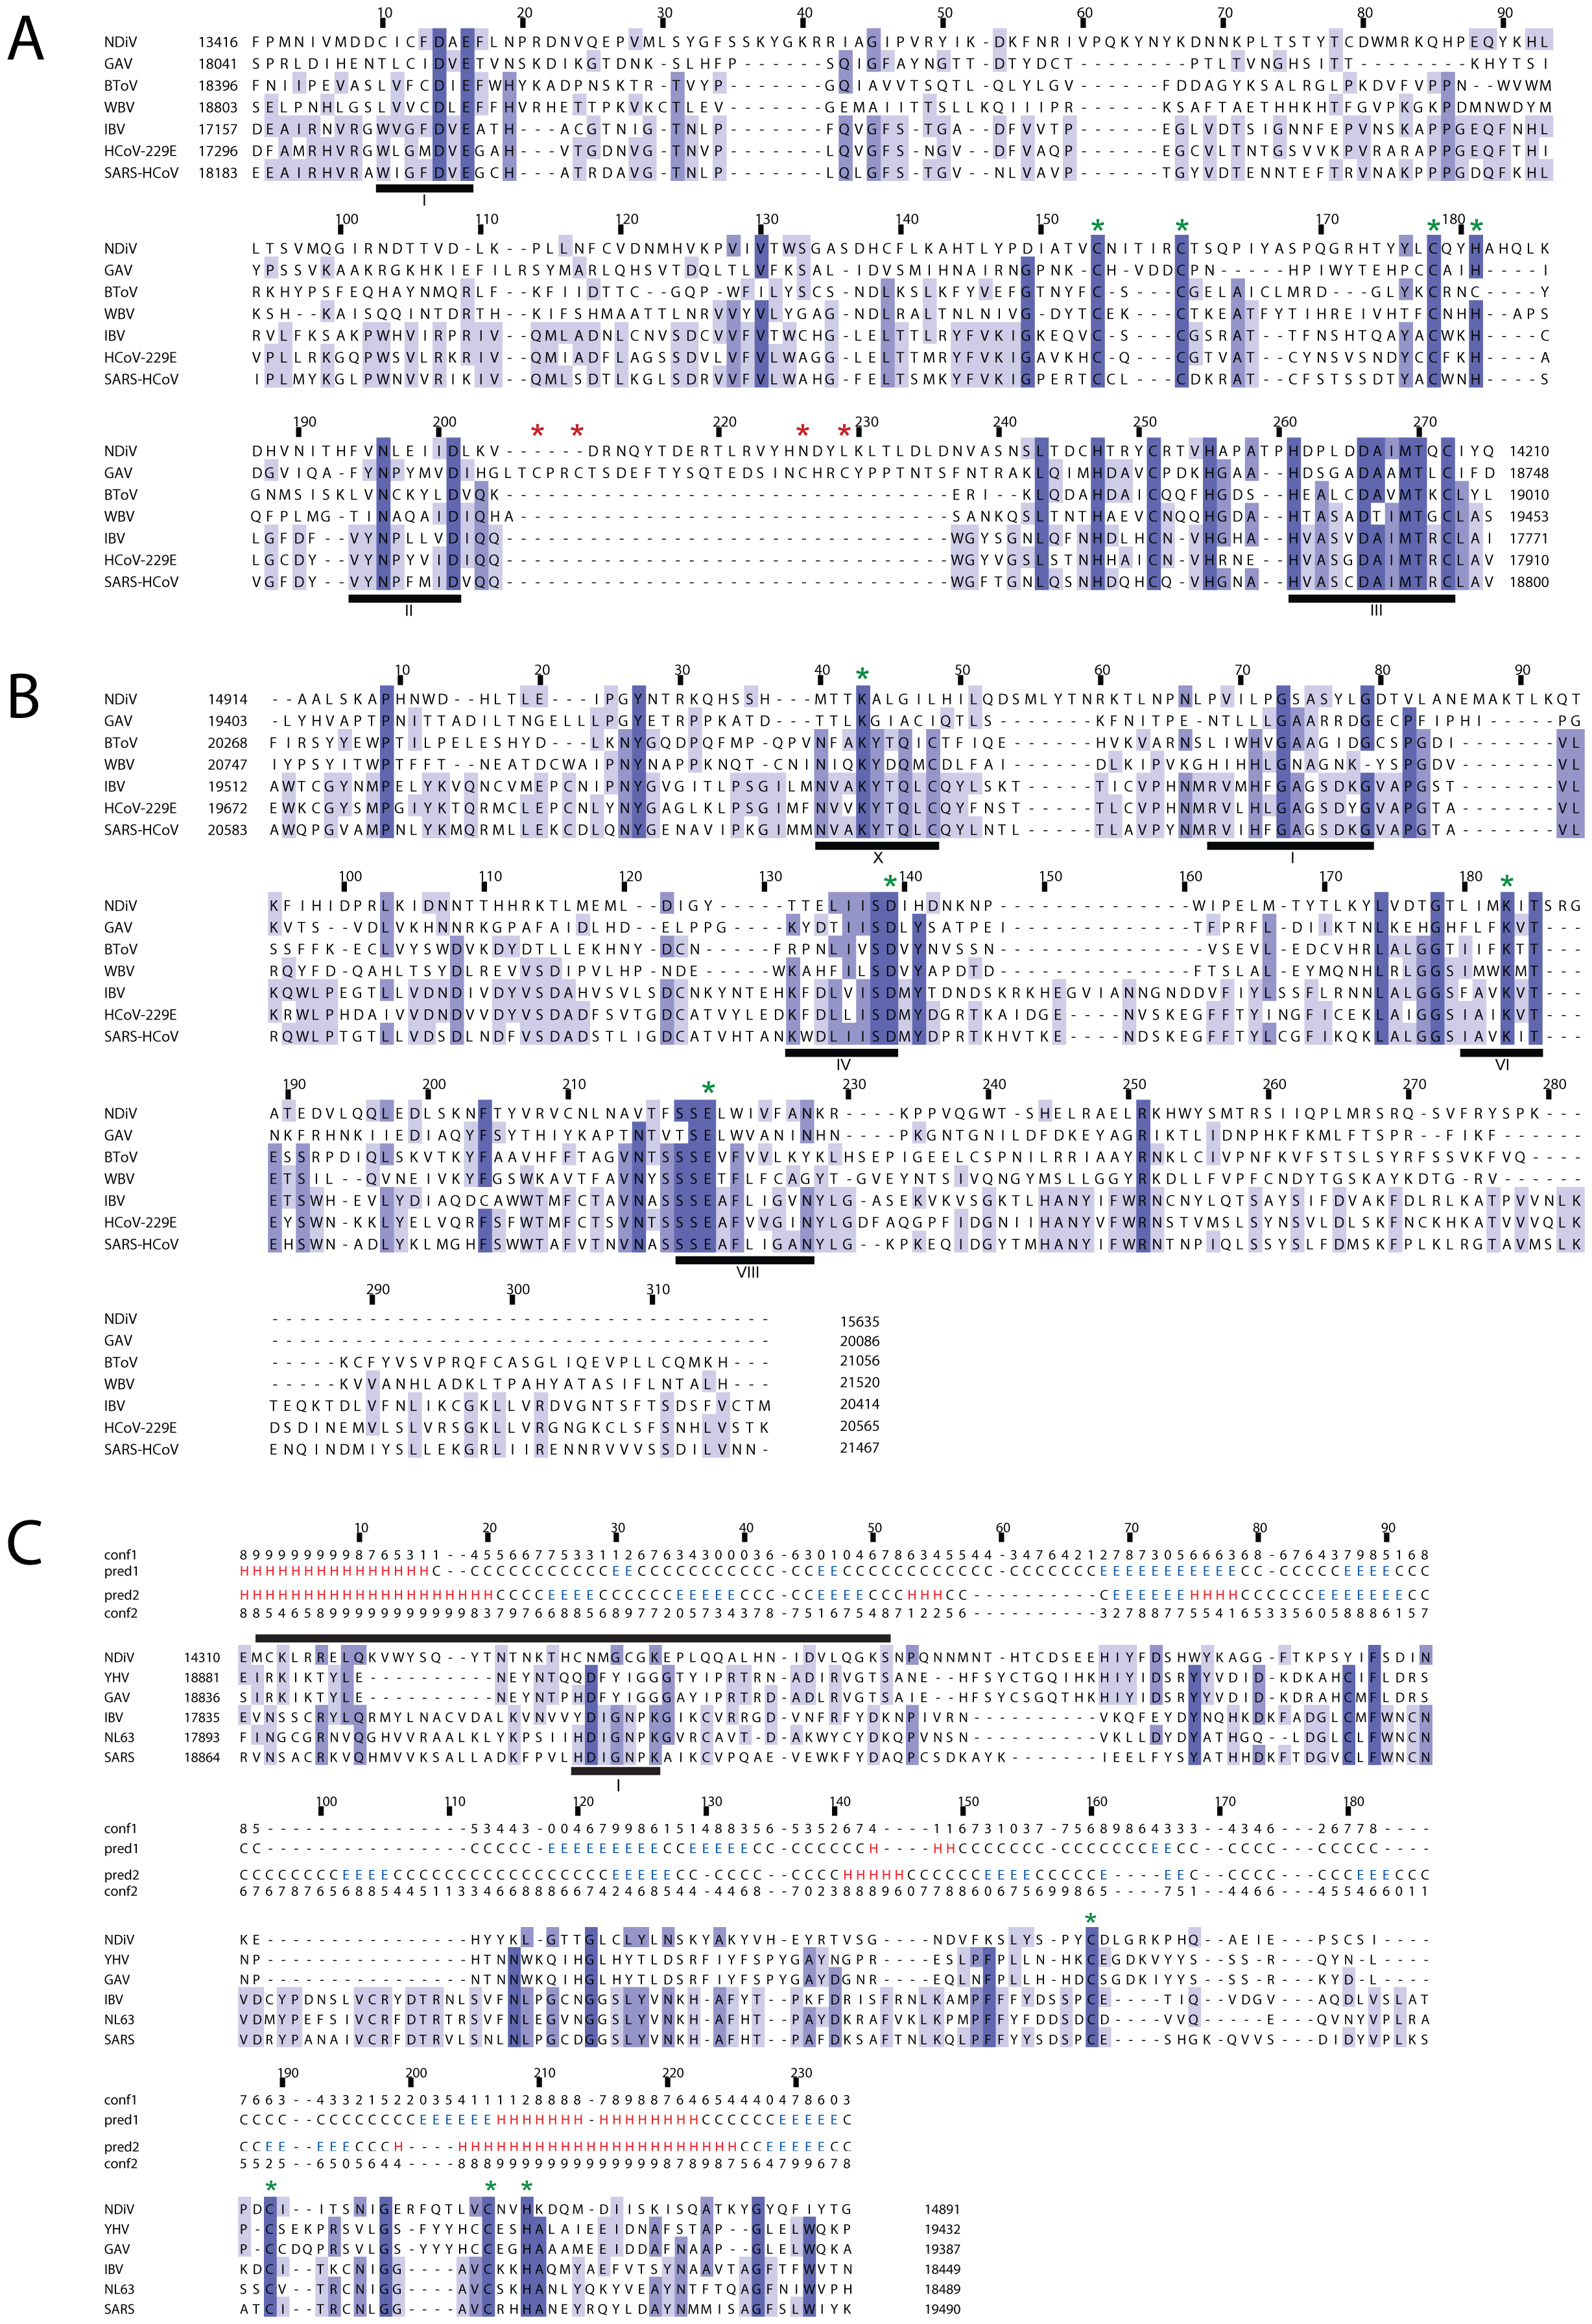 Alignments of ExoN, OMT and NMT domains of NDiV and other nidoviruses.